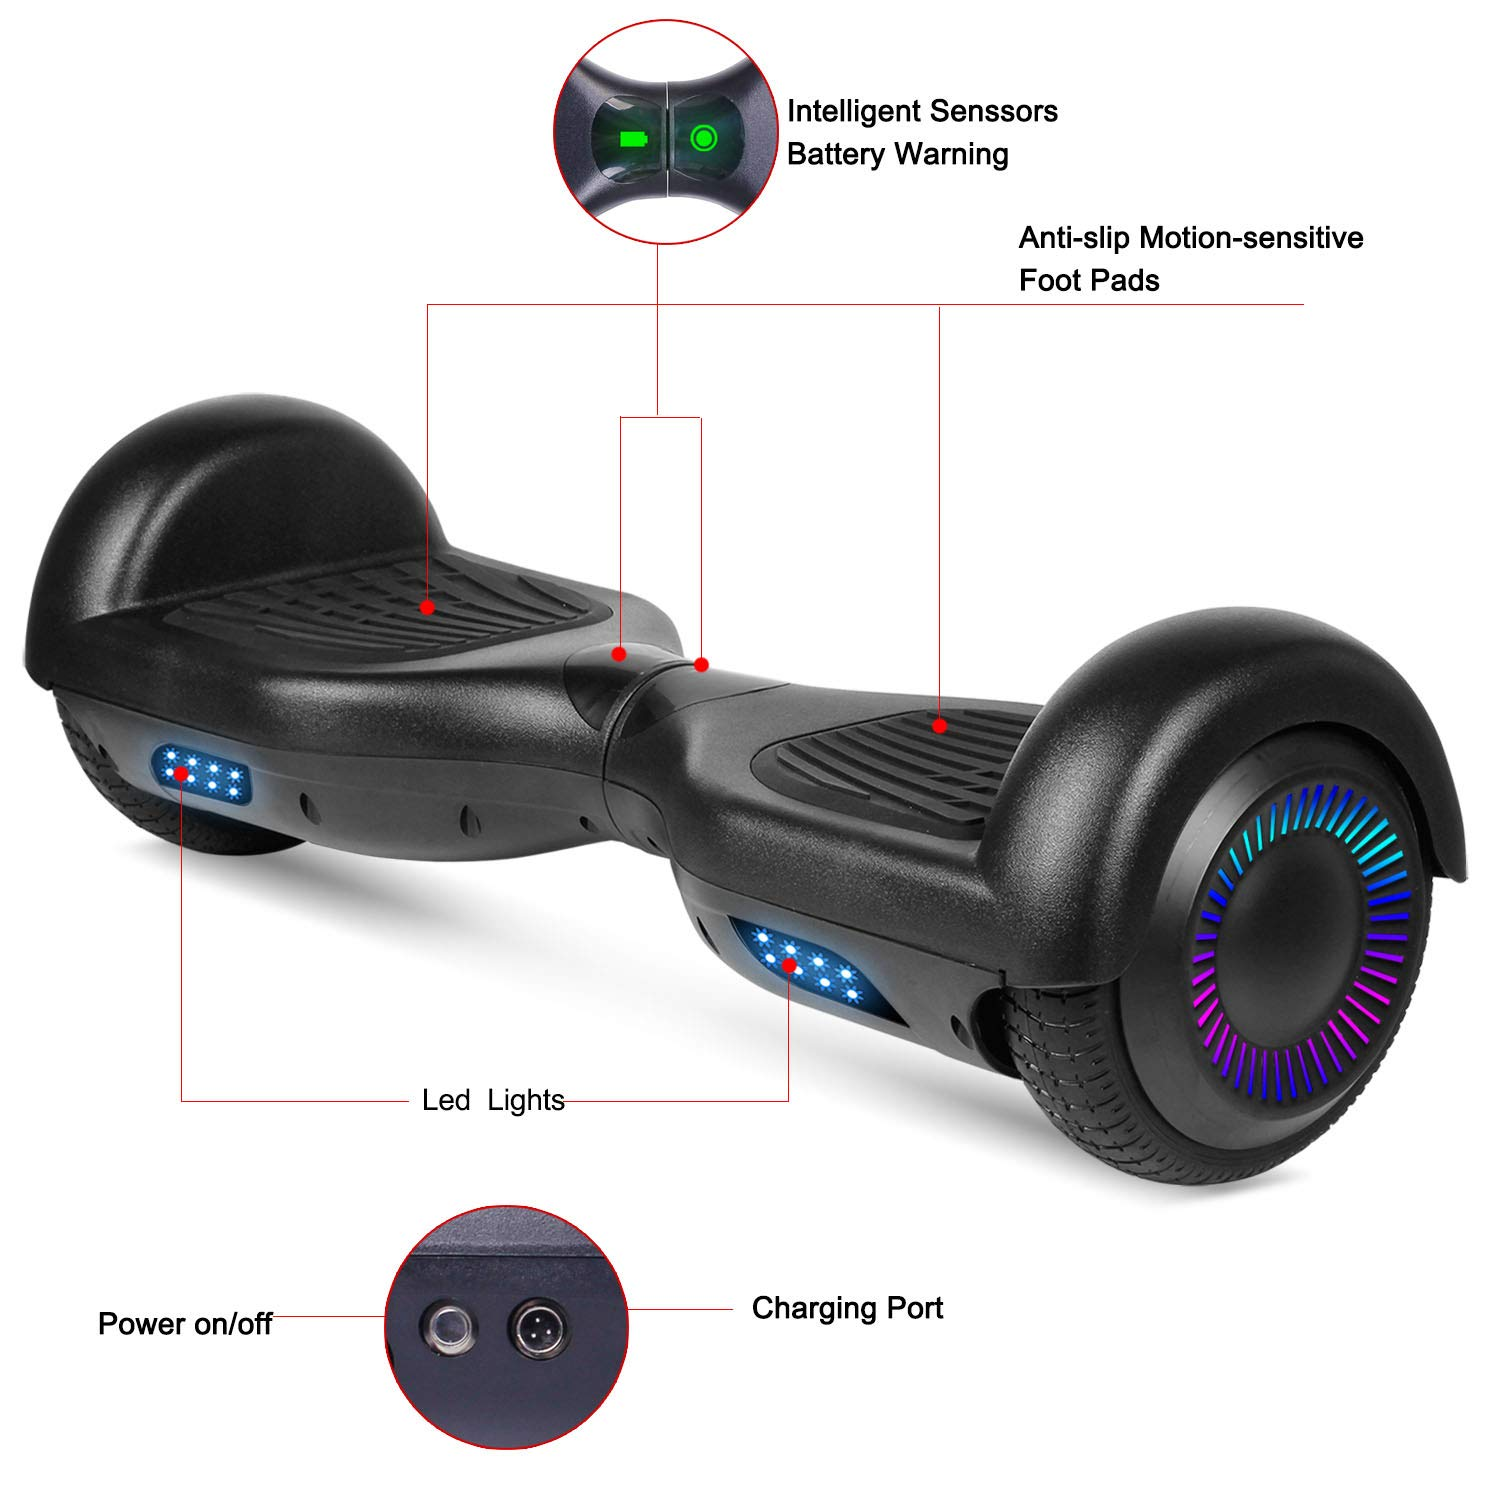 SWEETBUY Hoverboards UL Certified 6.5 Smart Scooter Two-Wheel self Balancing Electric Scooter Light Free Bag and Charger Included by SWEETBUY (Image #2)